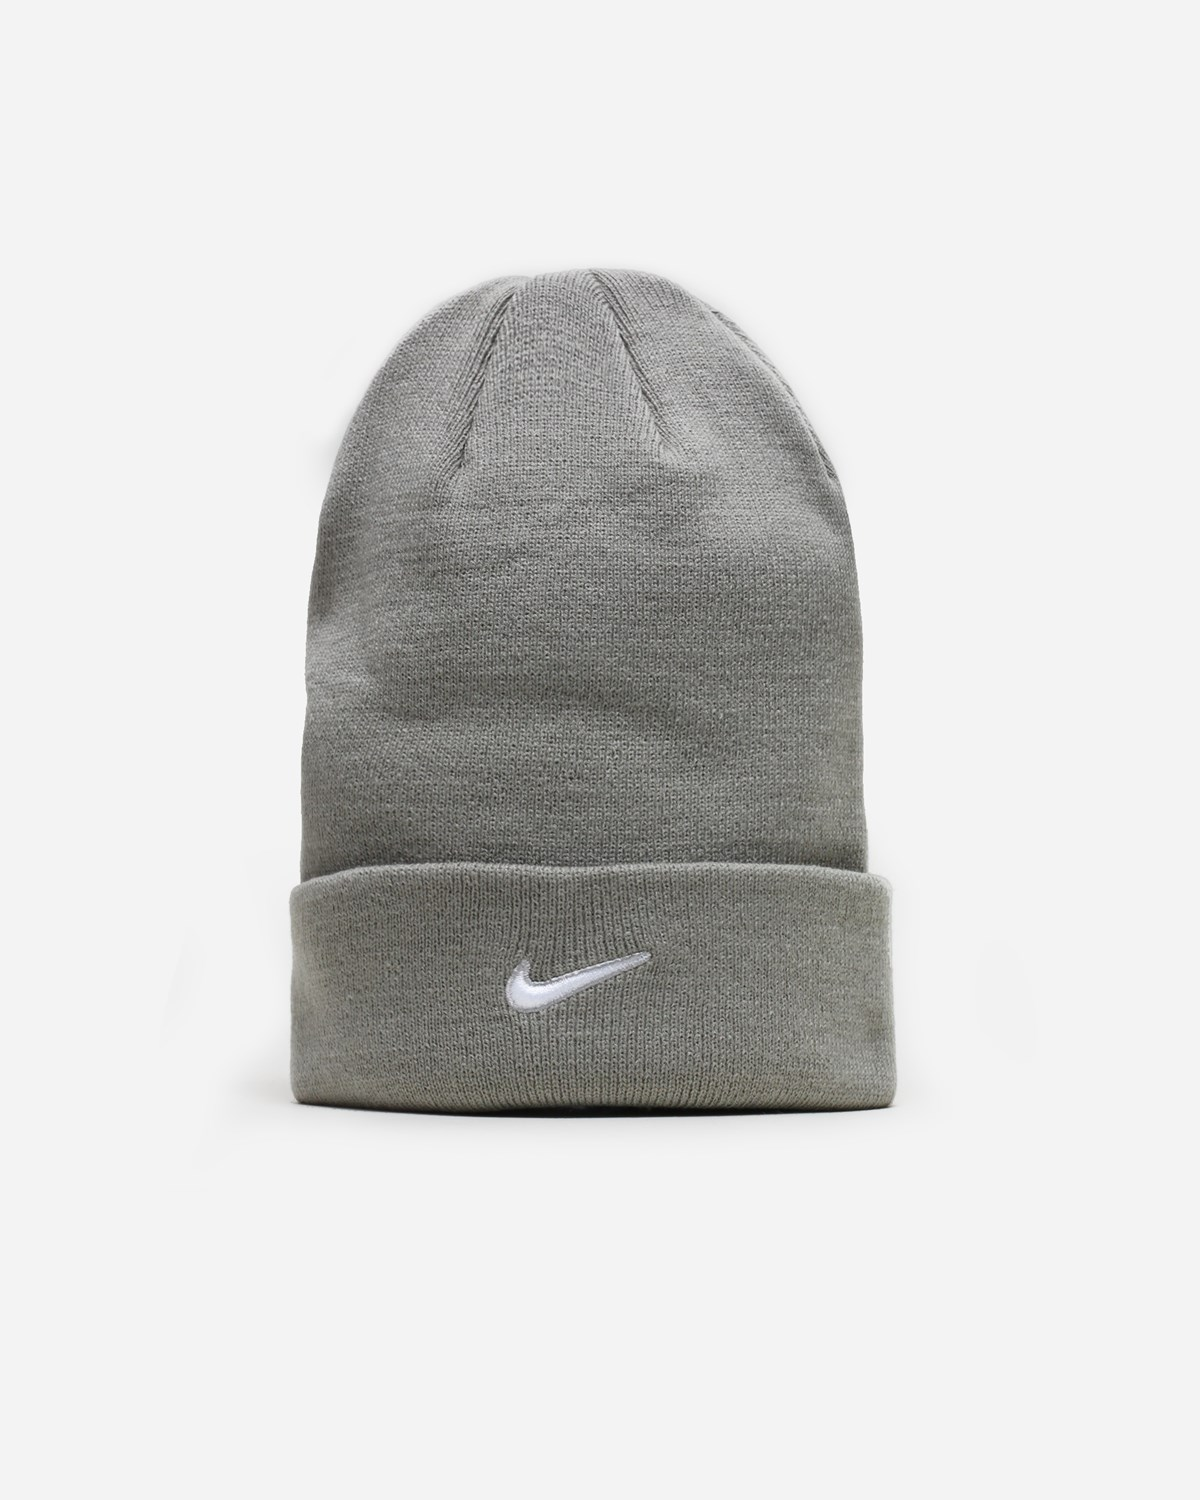 0aa27715a Hats, Beanies & Scarves - Supplying girls with sneakers - Naked